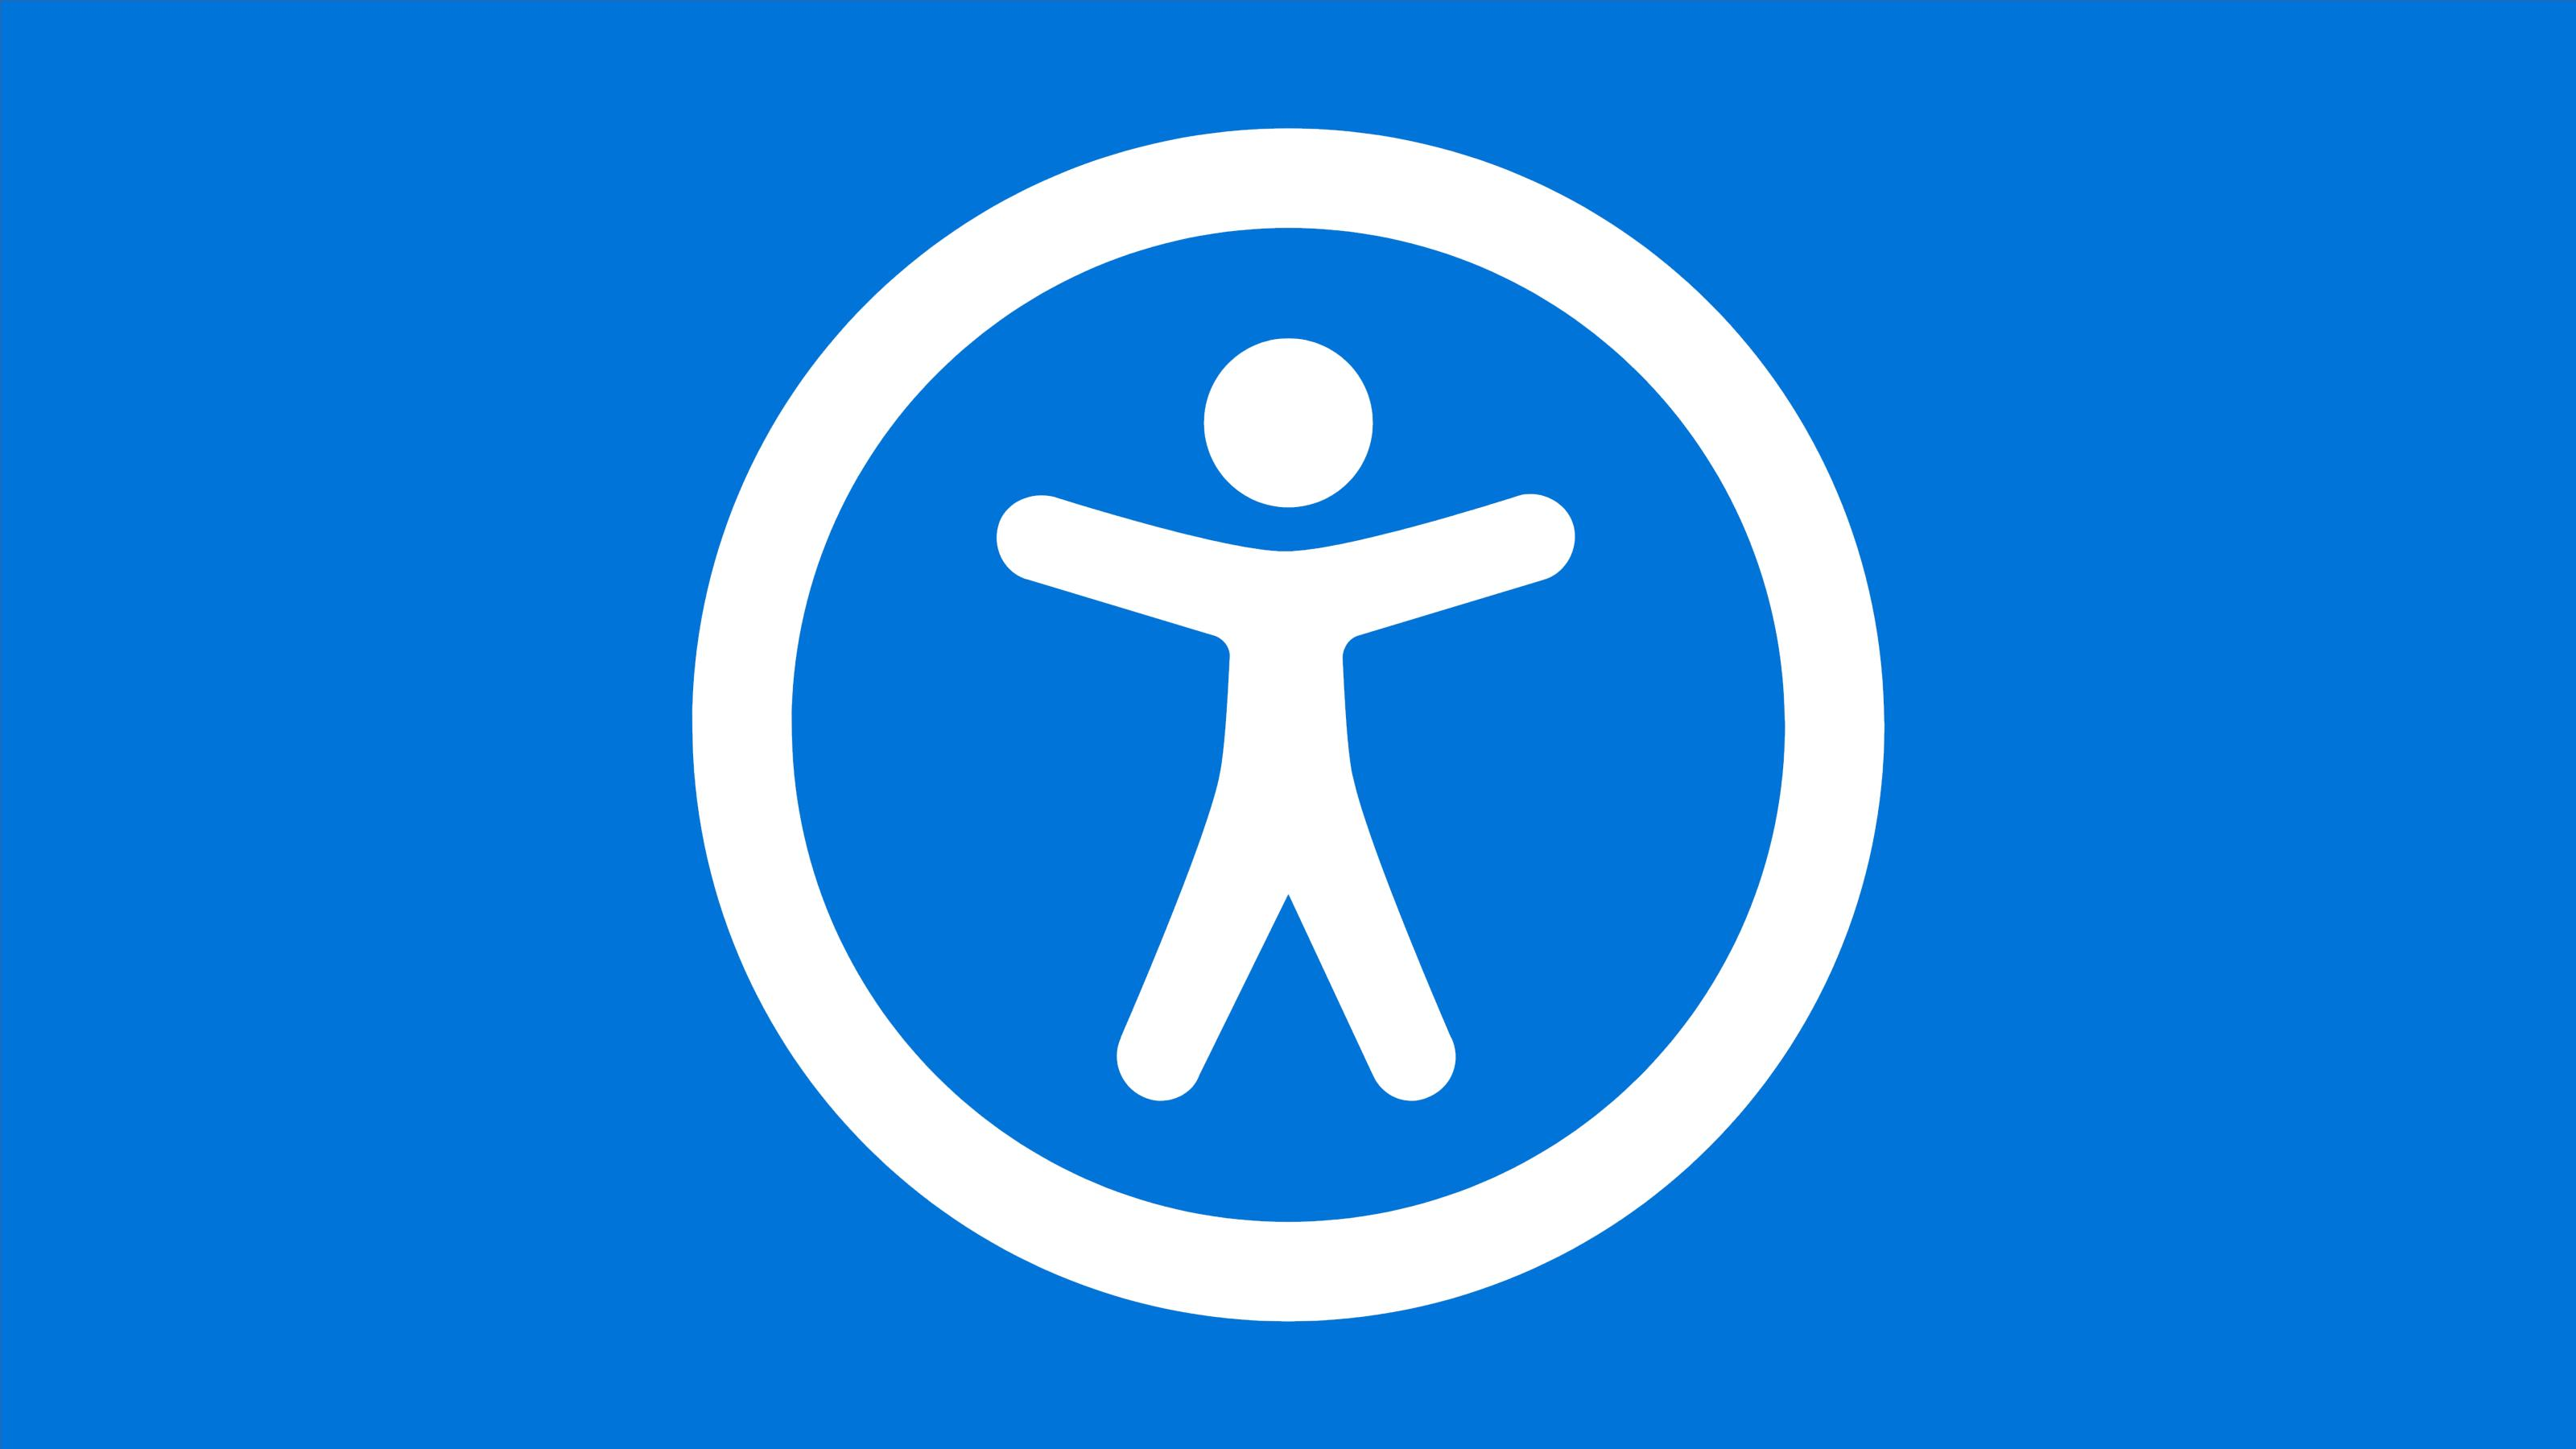 Universal access icon: a stick figure with a circle around them